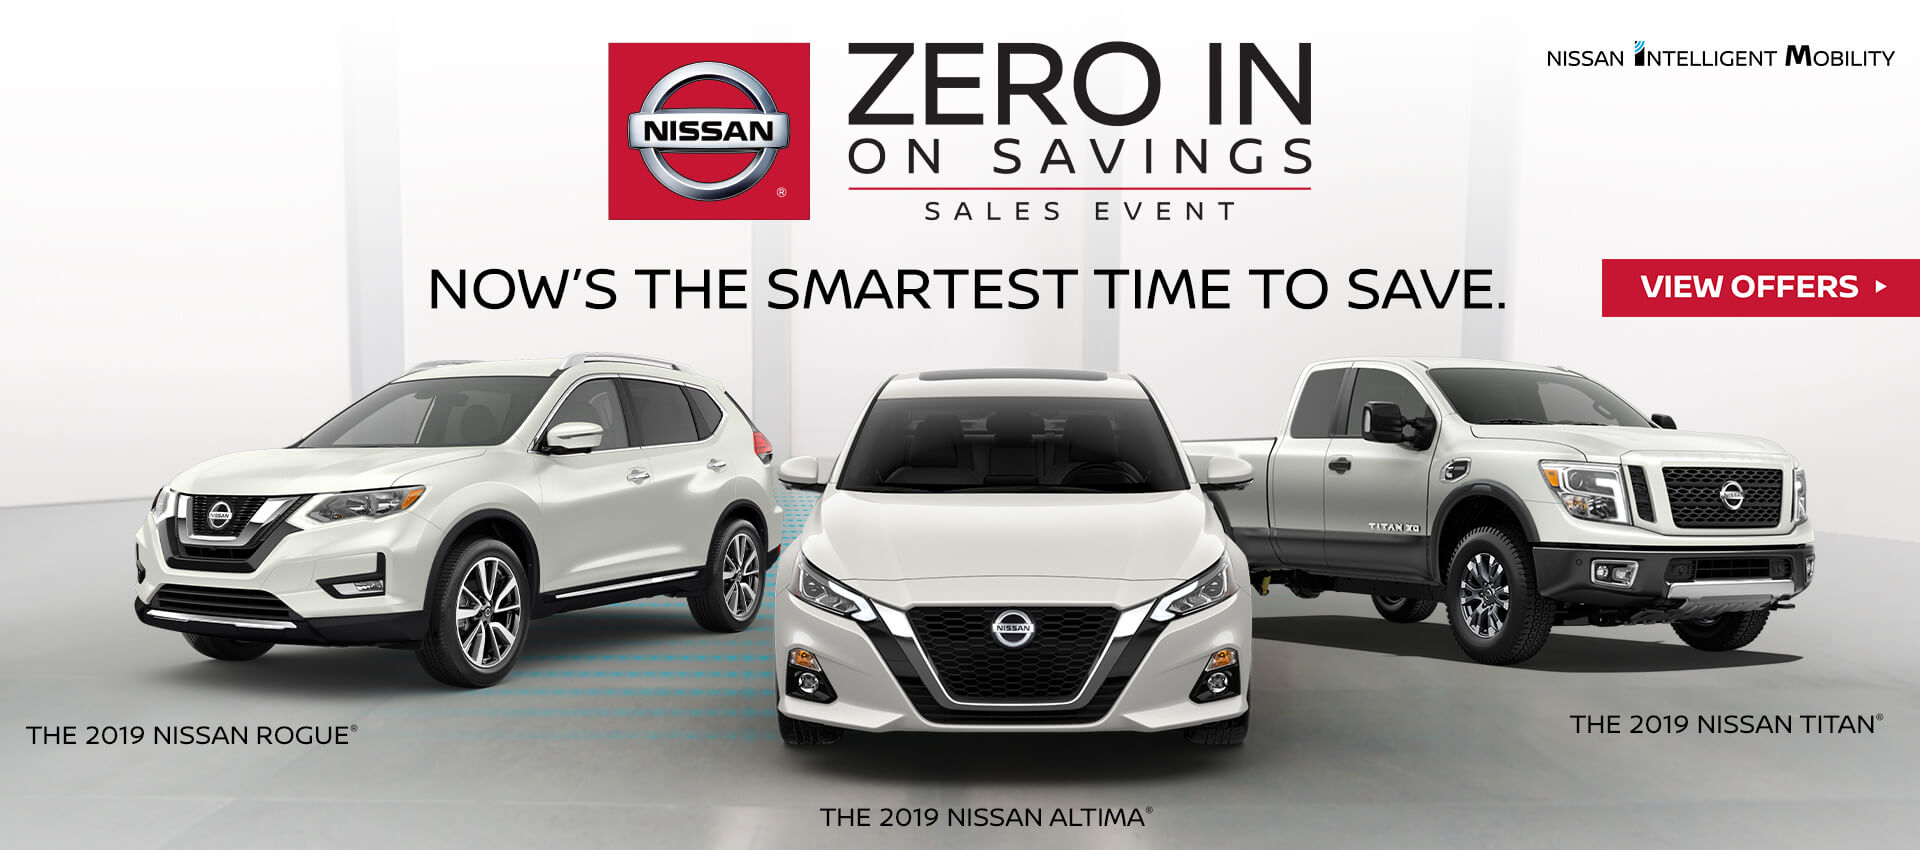 Zero In On Savings Event